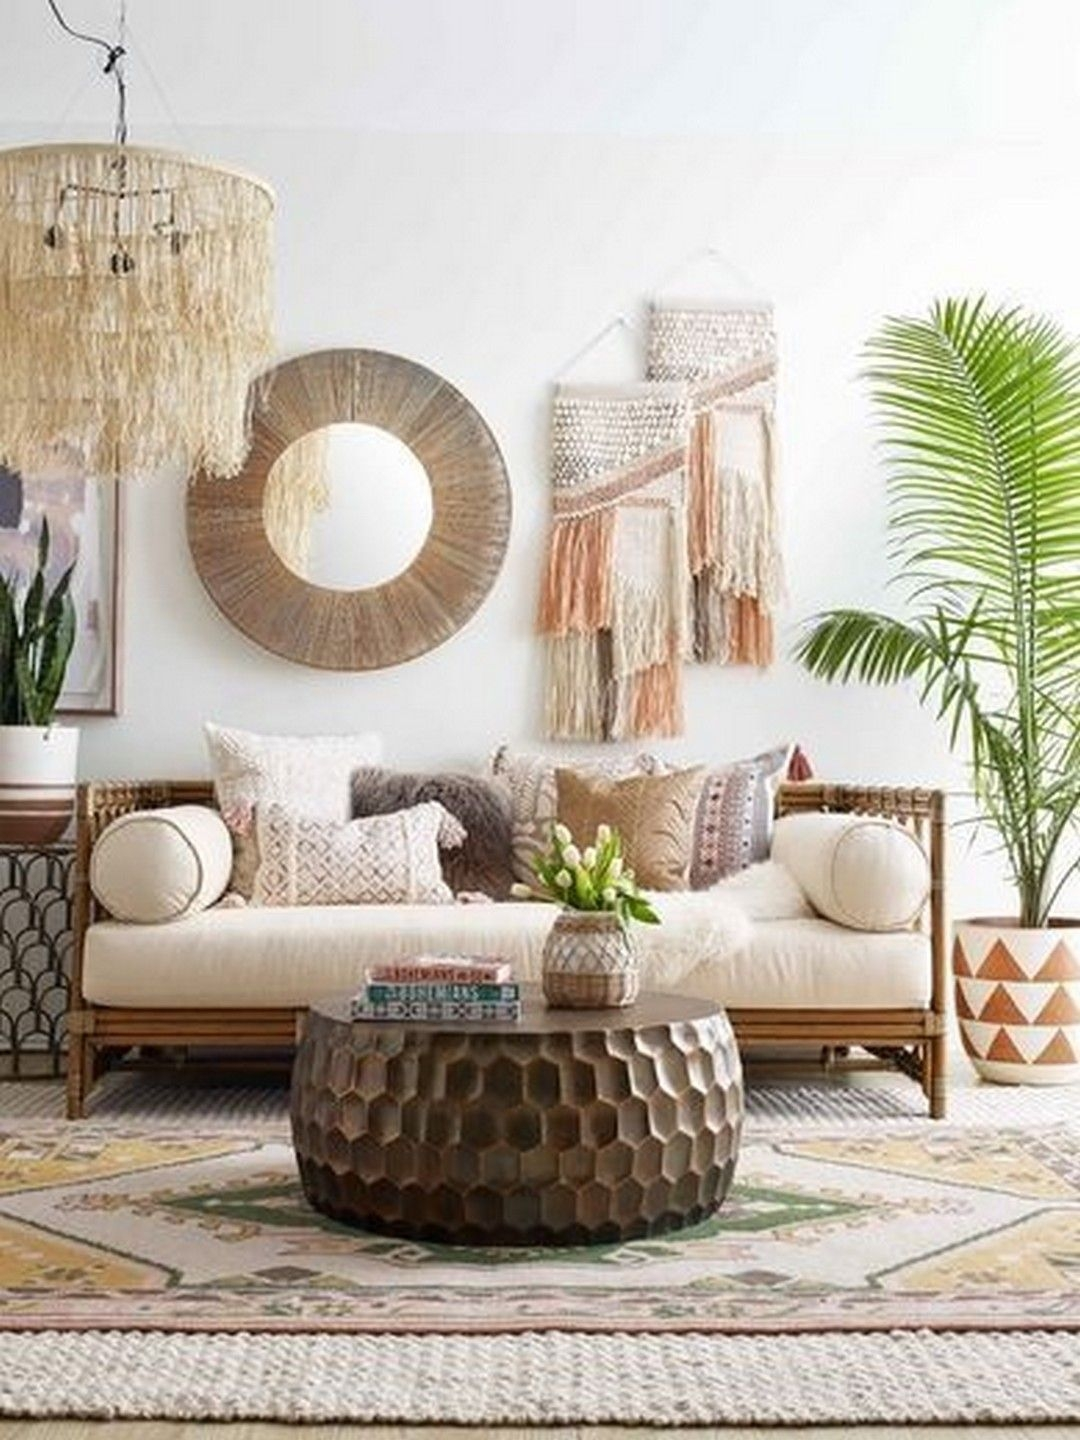 Beaut Boho Living Room Decor On A Budget Ideas Spaces Living Room Chairs On Elegant Hugedomains On Boho Living Room Decor On A Budget Ideas Spaces Living Room Chairs